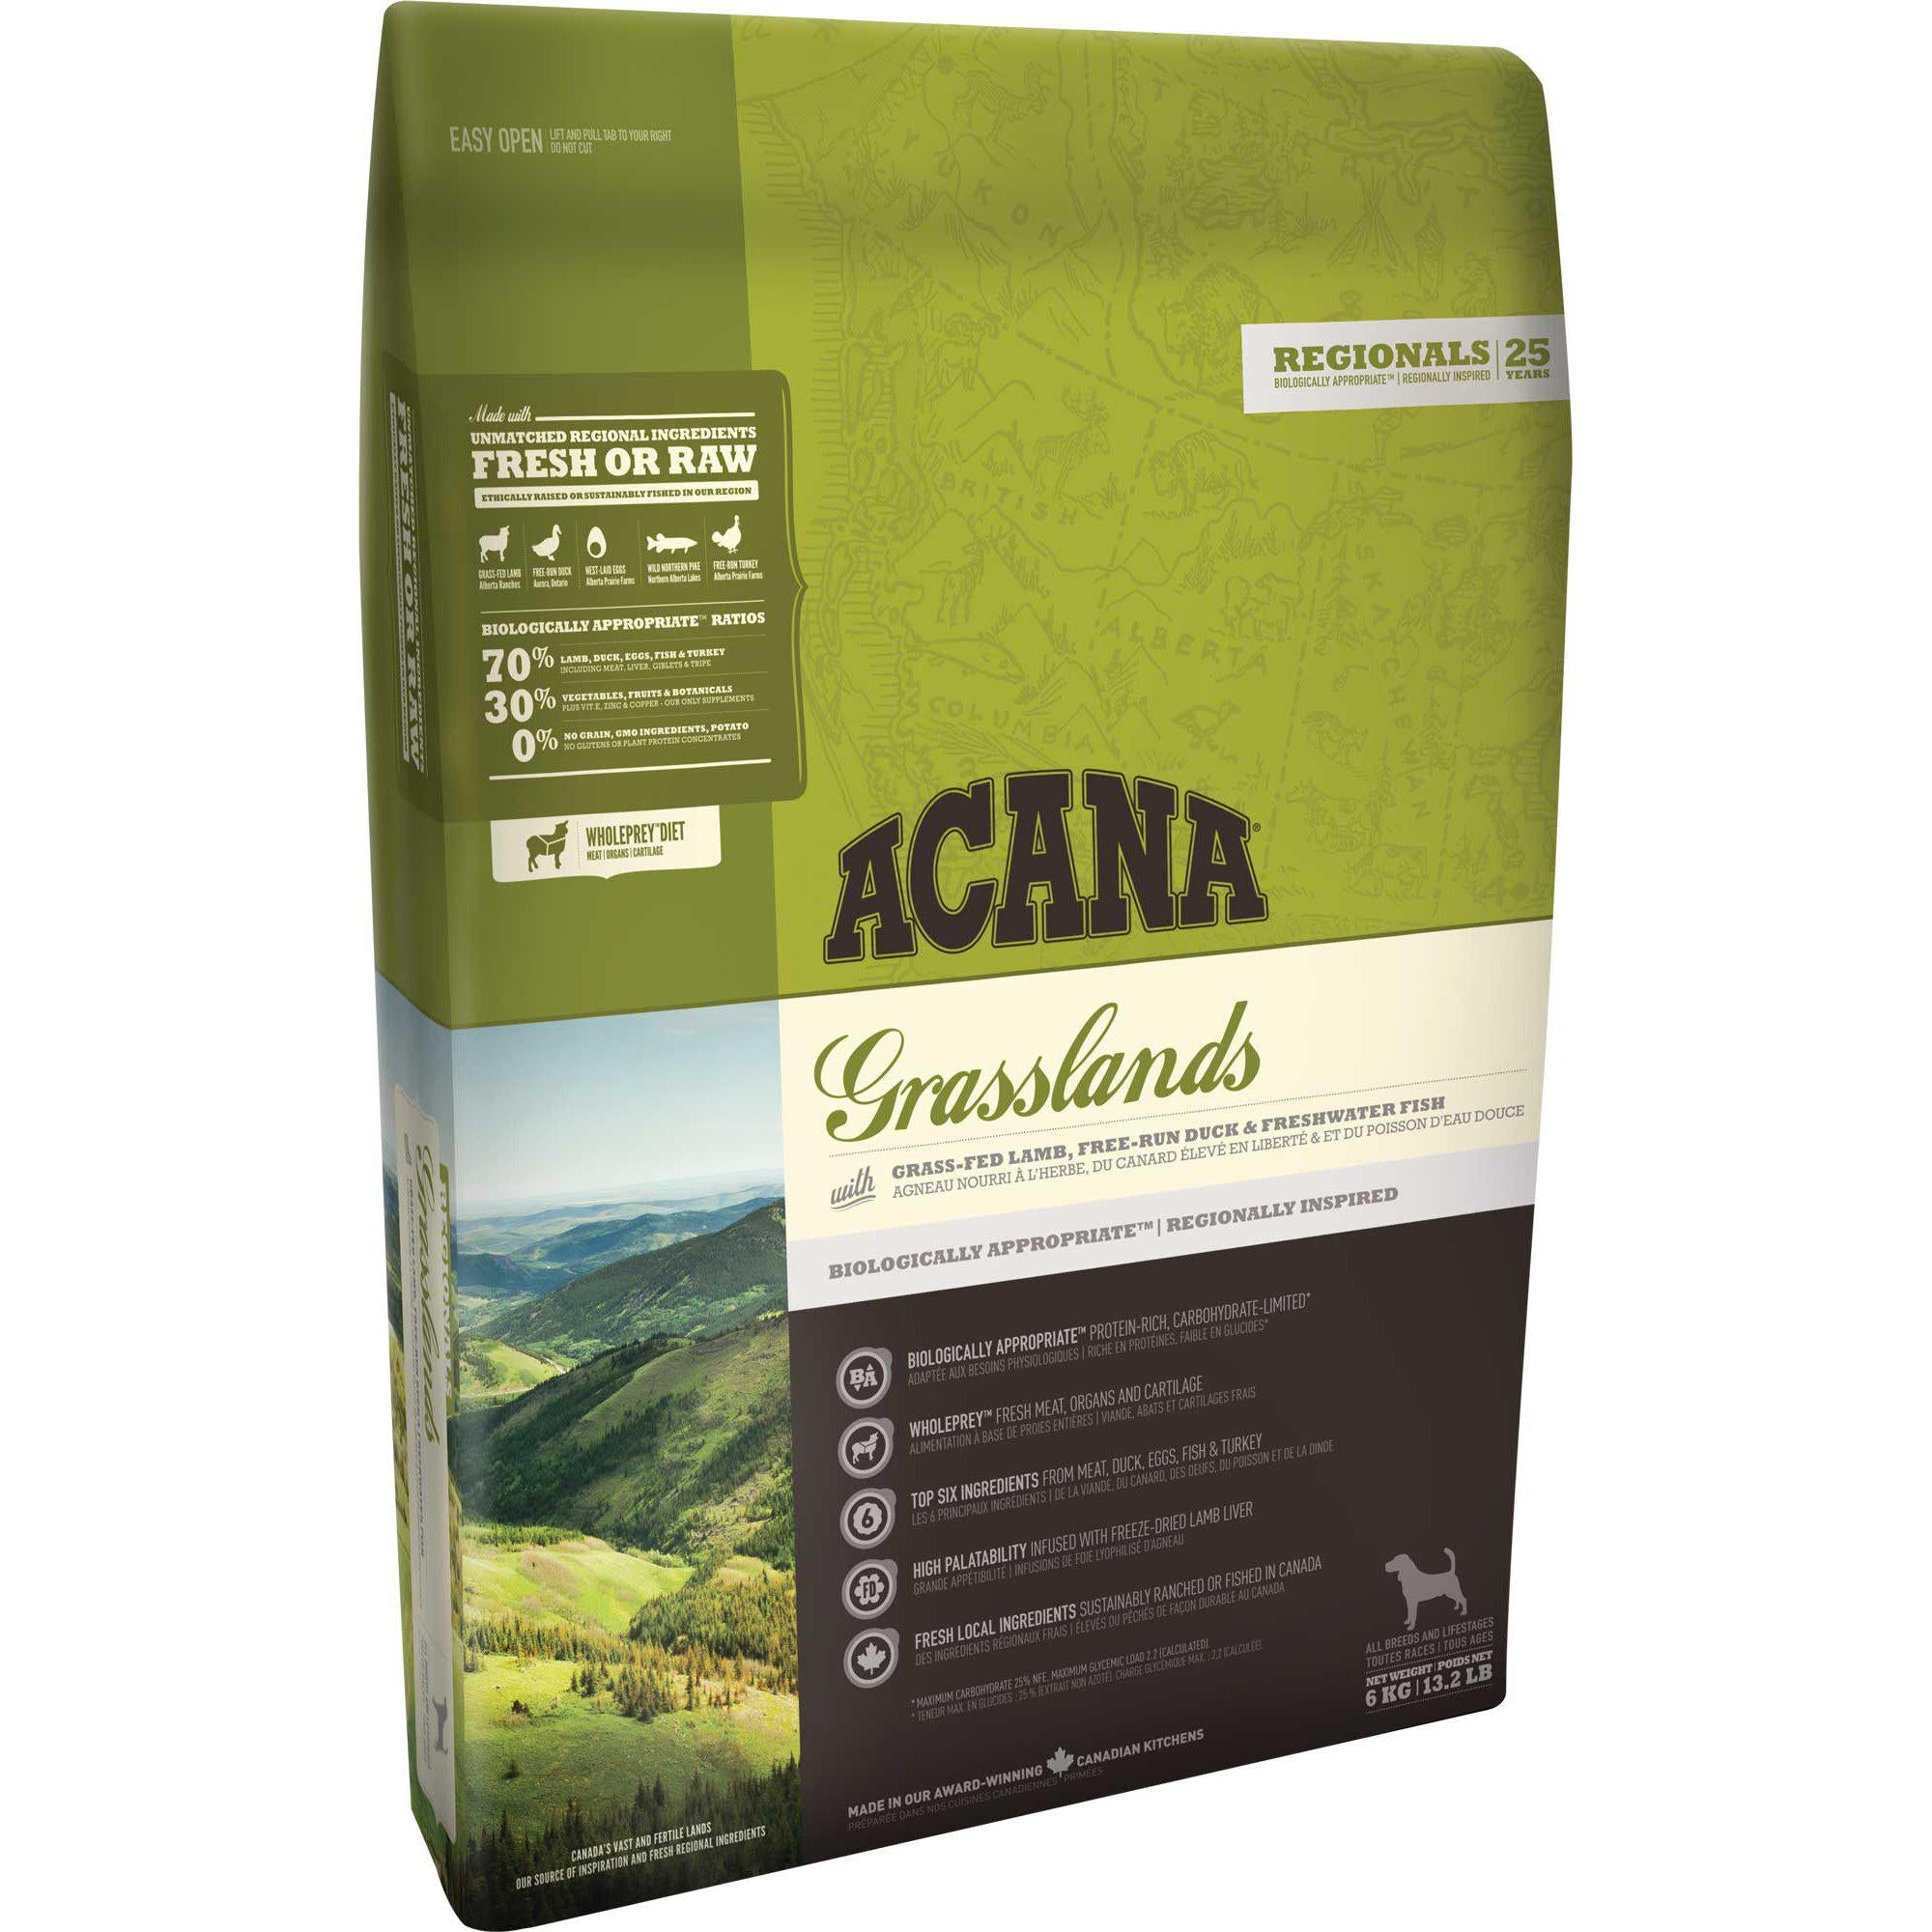 ACANA® REGIONALS Grasslands - Critter Country Supply Ltd.